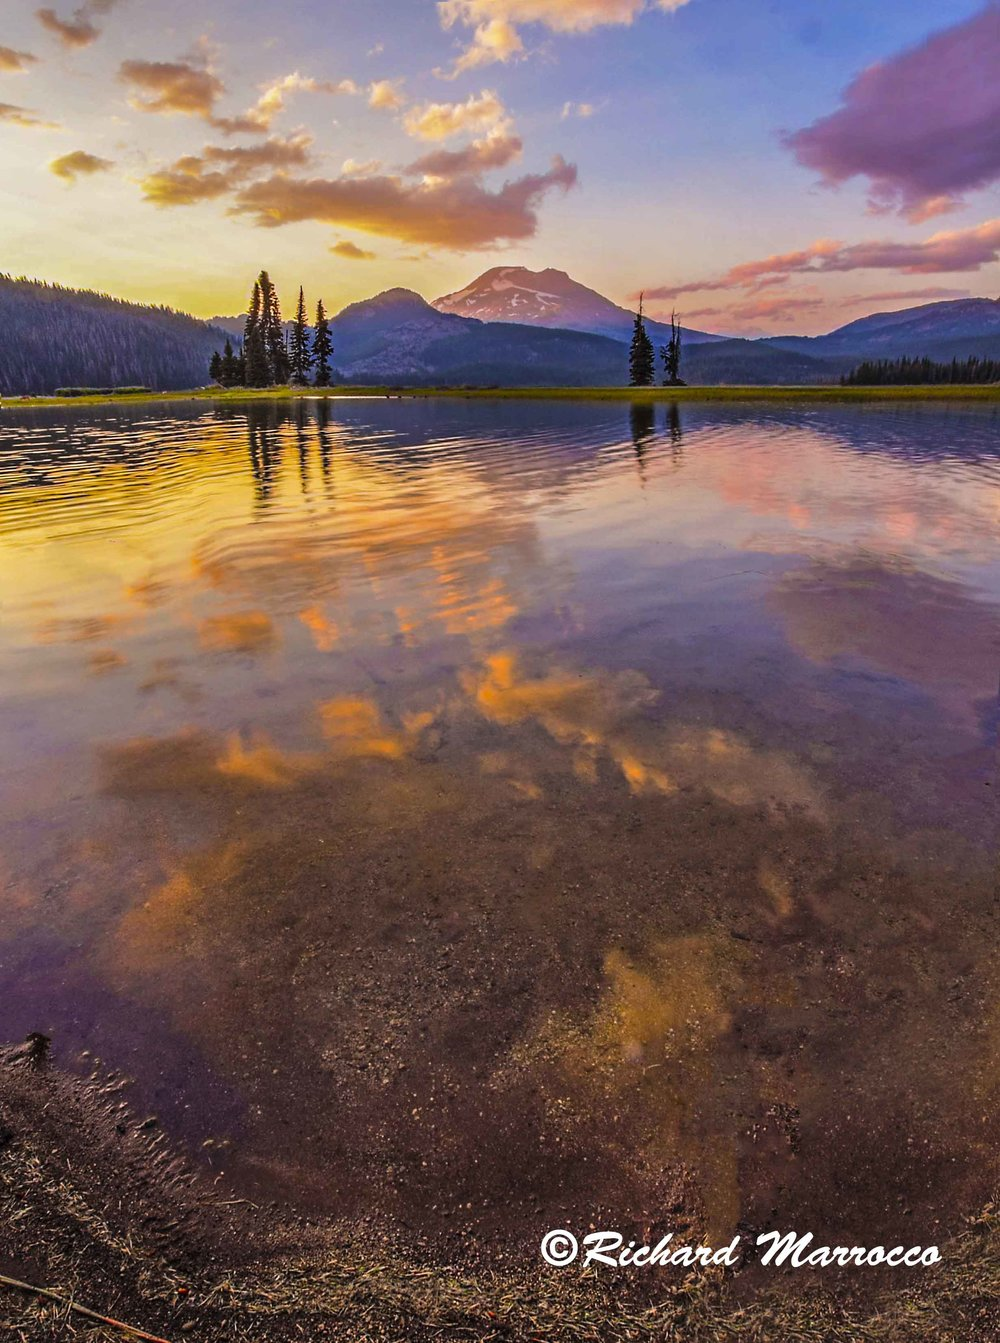 GalleriesLandScapes-sunsets — Richard Marrocco Photography